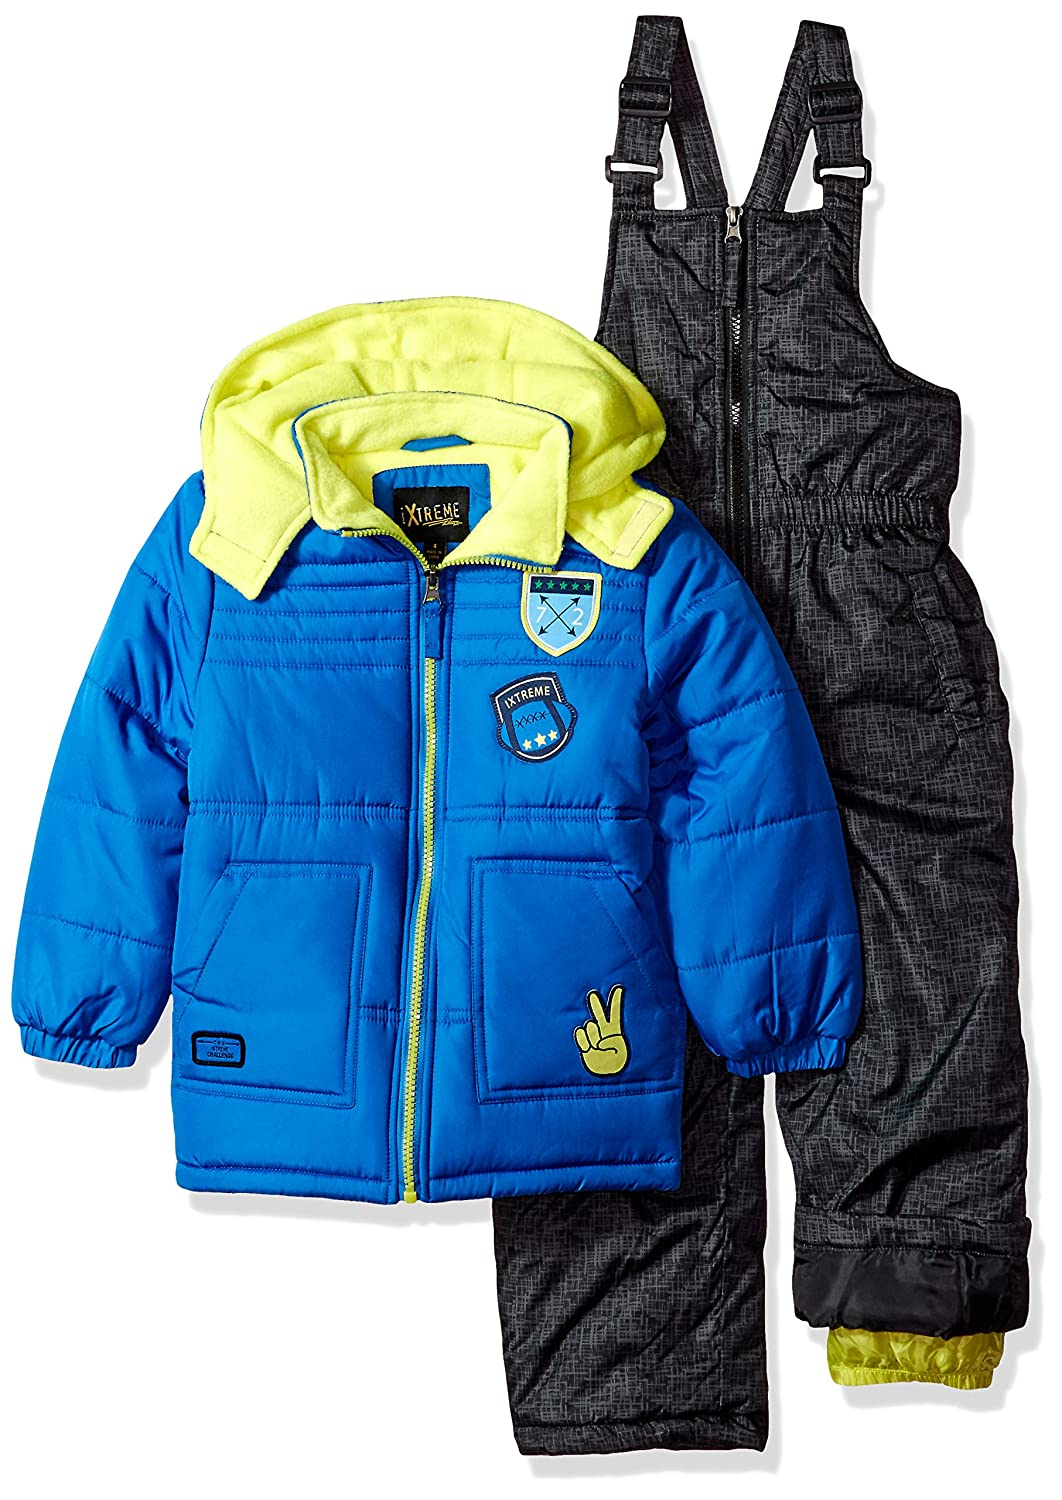 iXTREME Boys Quilted Snowsuit W/Patches 98455